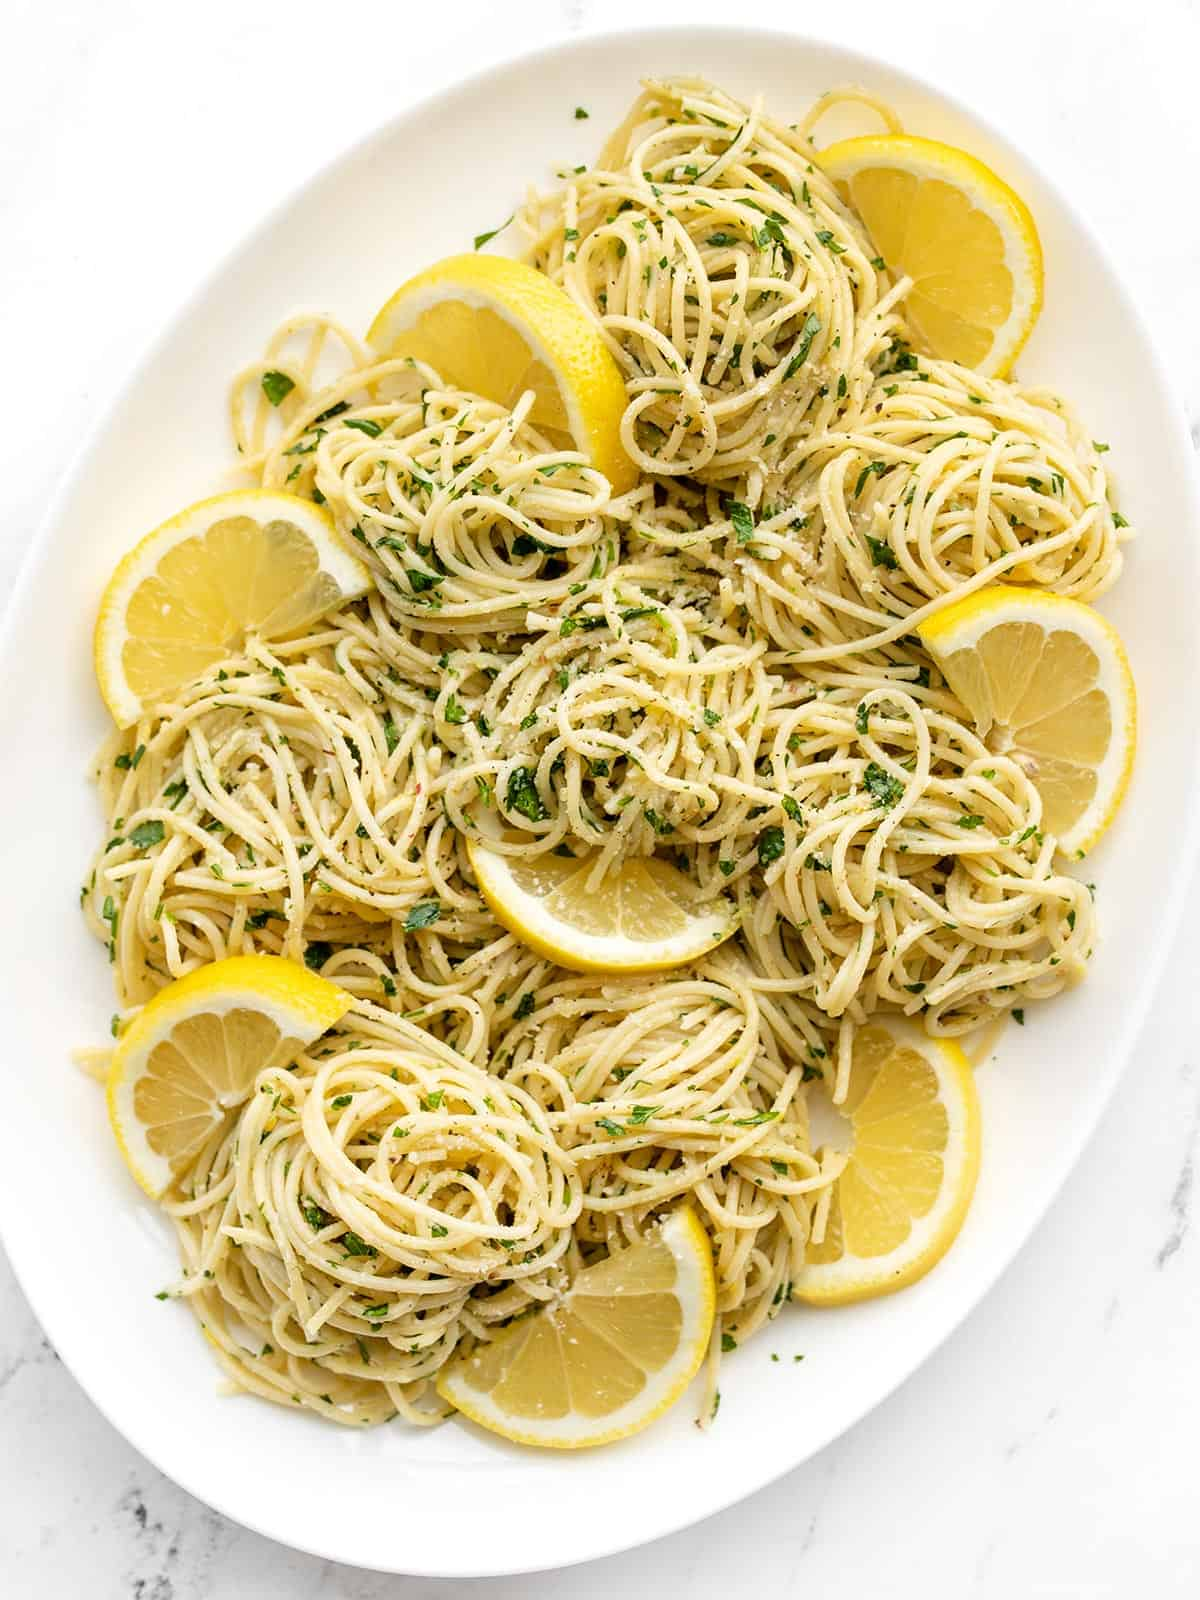 Overhead view of an oval platter full of lemon parsley pasta with lemon slices as garnish